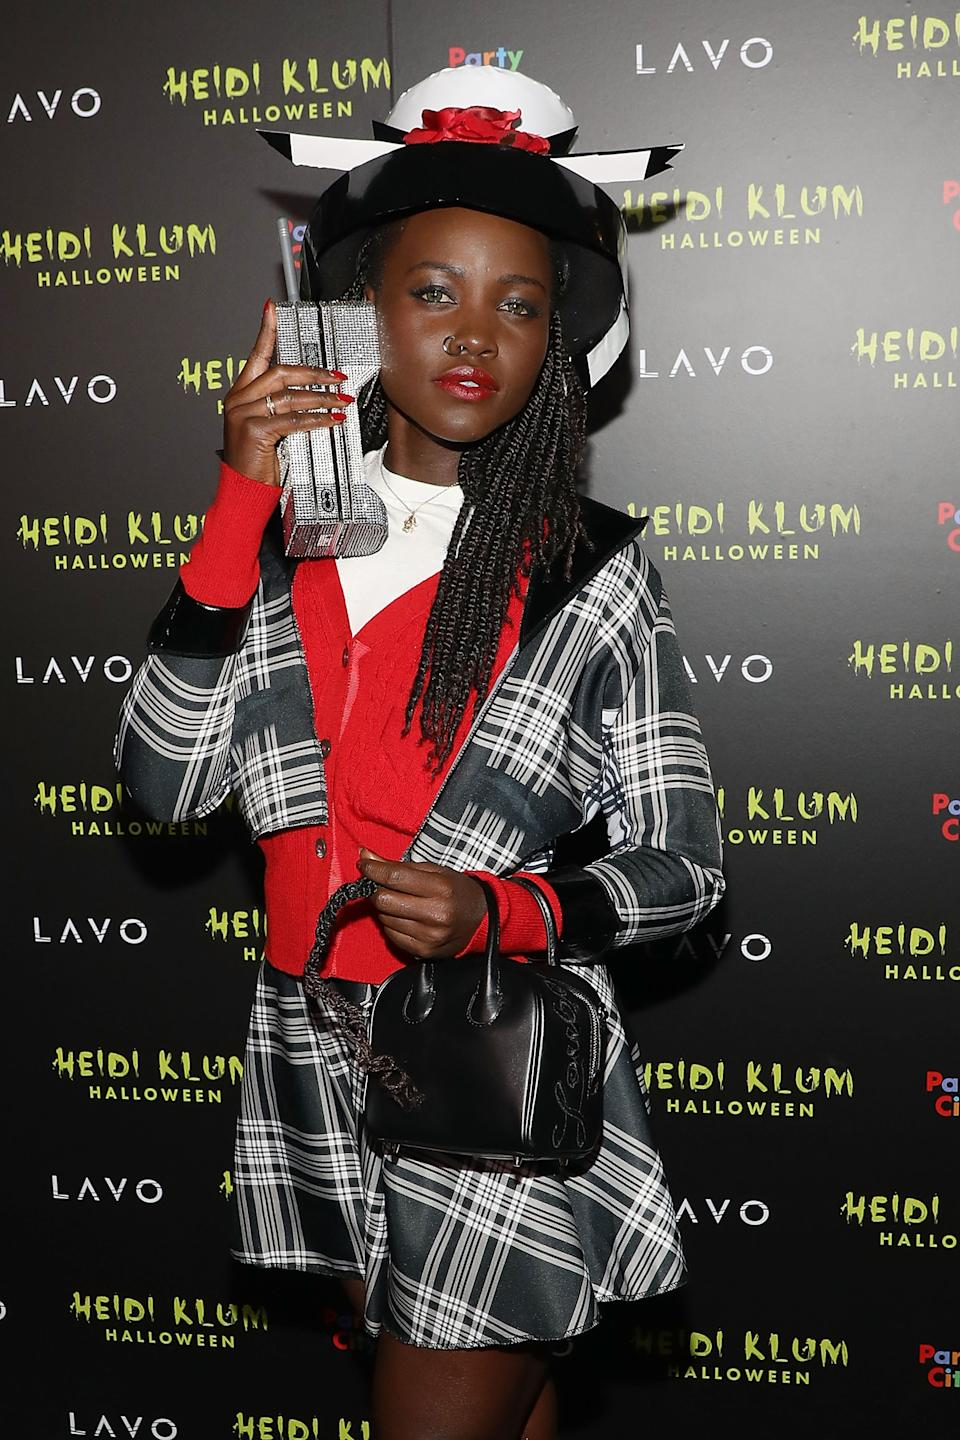 Lupita Nyong'o dresses as Clueless for Halloween